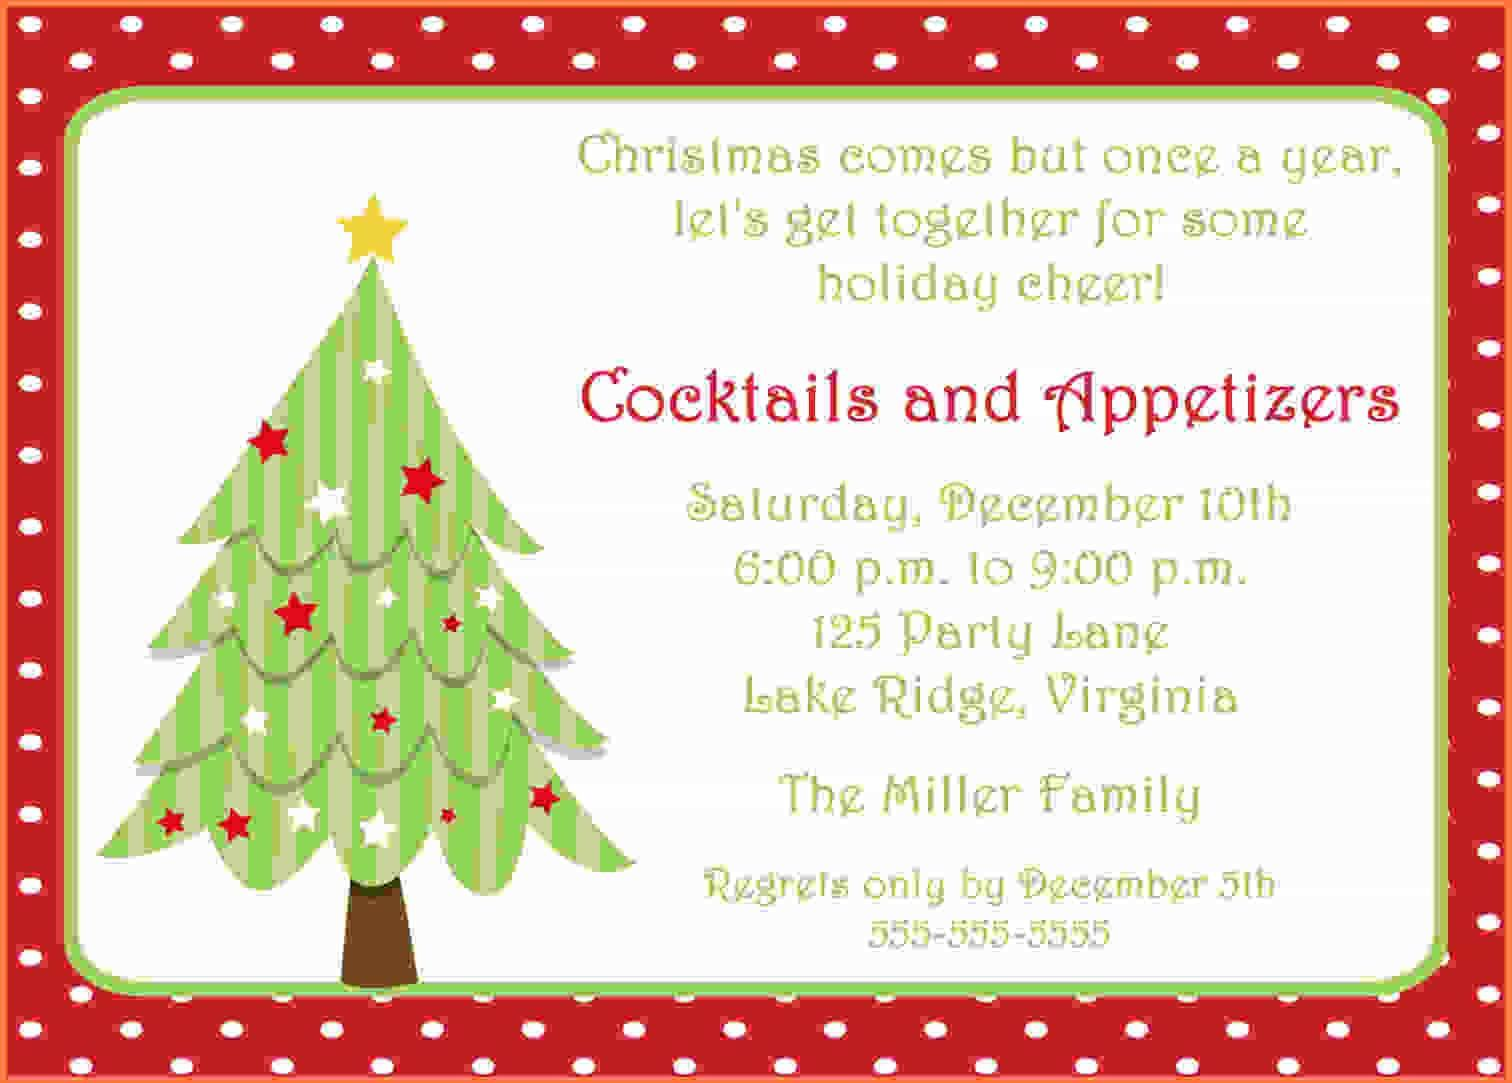 How To Create Free Christmas Party Invitation Templates Ide Christmas Invitations Template Christmas Party Invitations Free Christmas Party Invitation Template